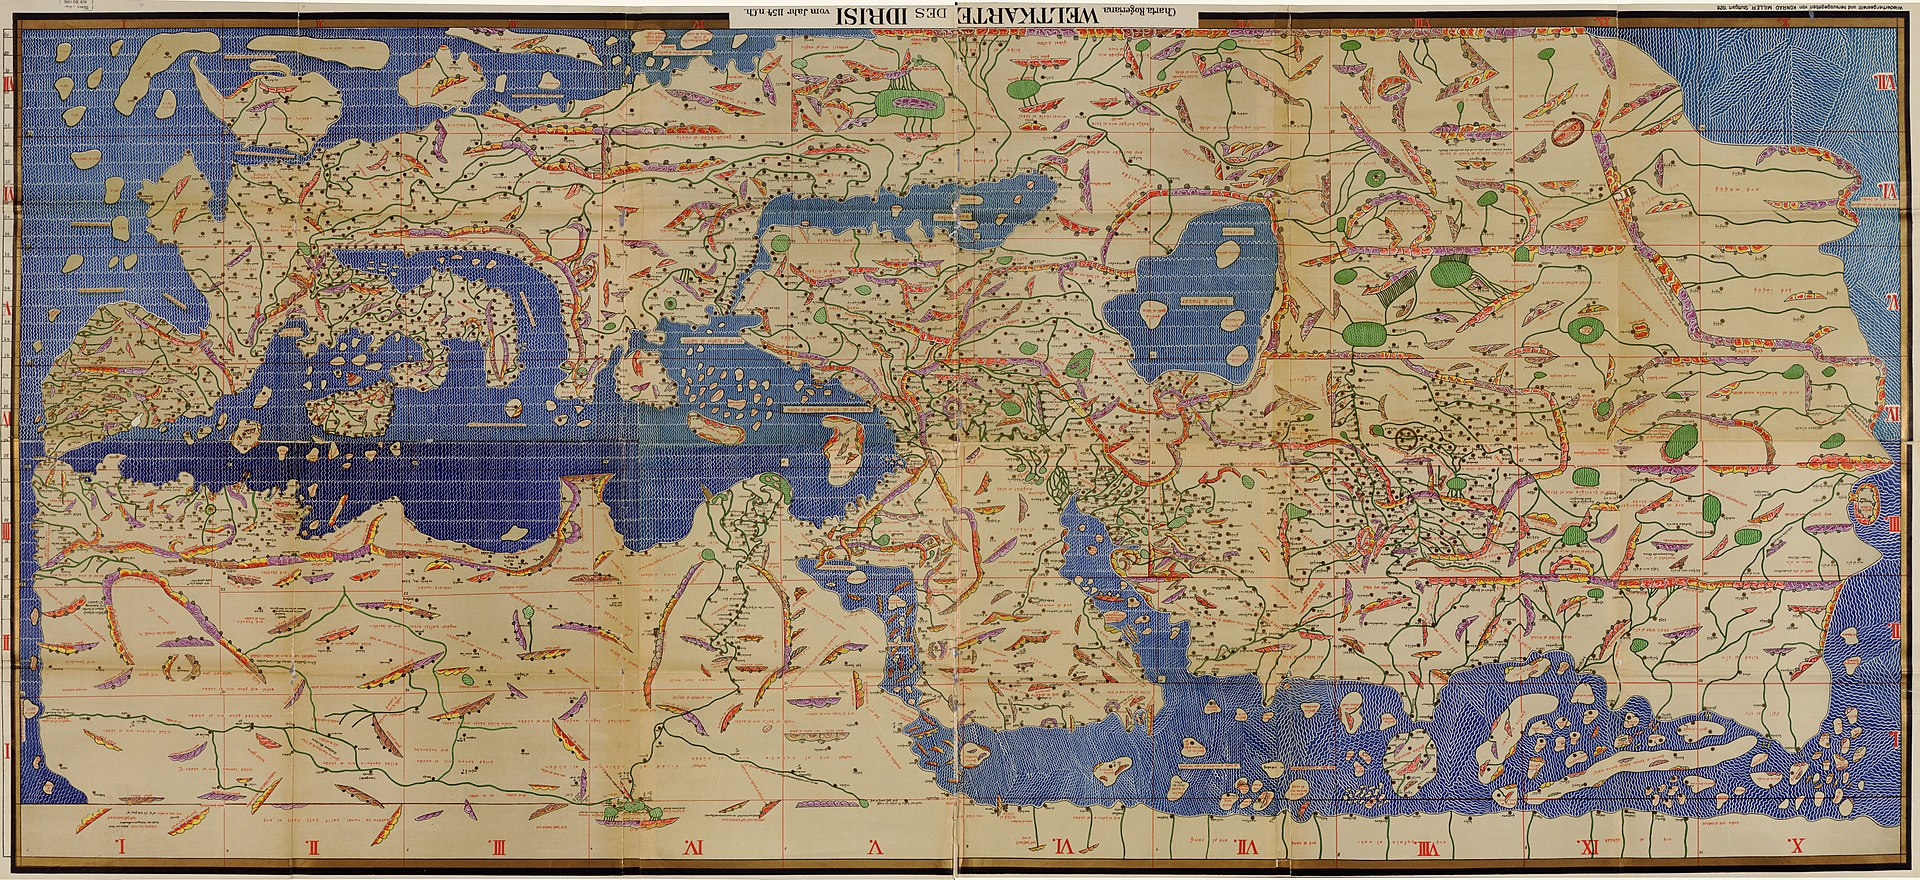 Medieval Map (1154) created by Geographer Al Idrisi at Court of Ruggero II, Sicily